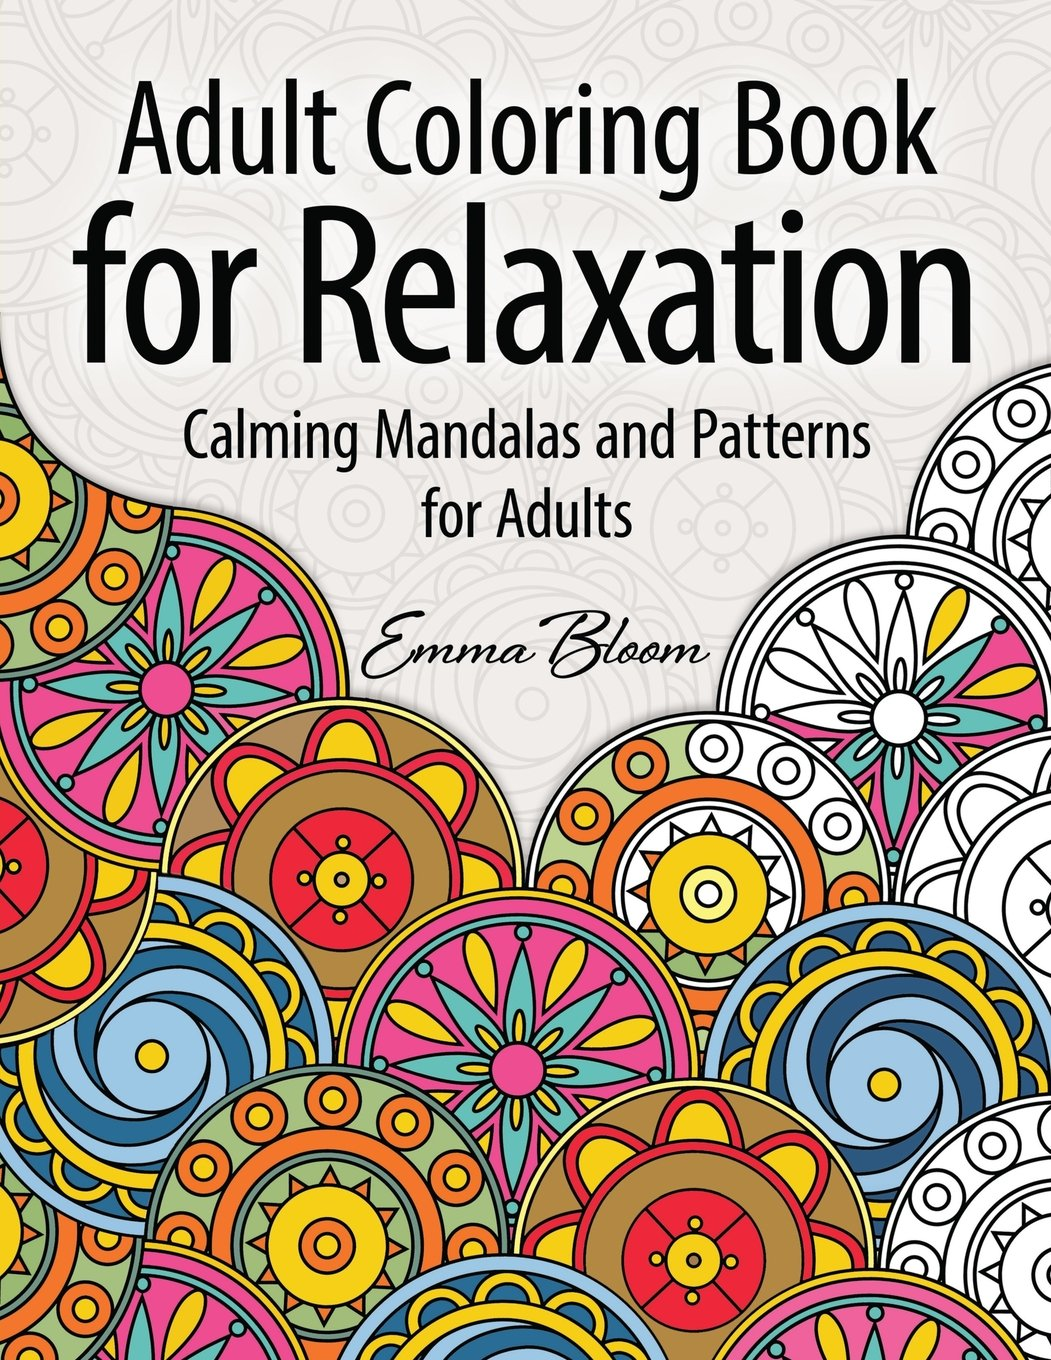 Adult Coloring Book For Relaxation Calming Mandalas And Patterns Adults Books Emma Bloom 9781514186374